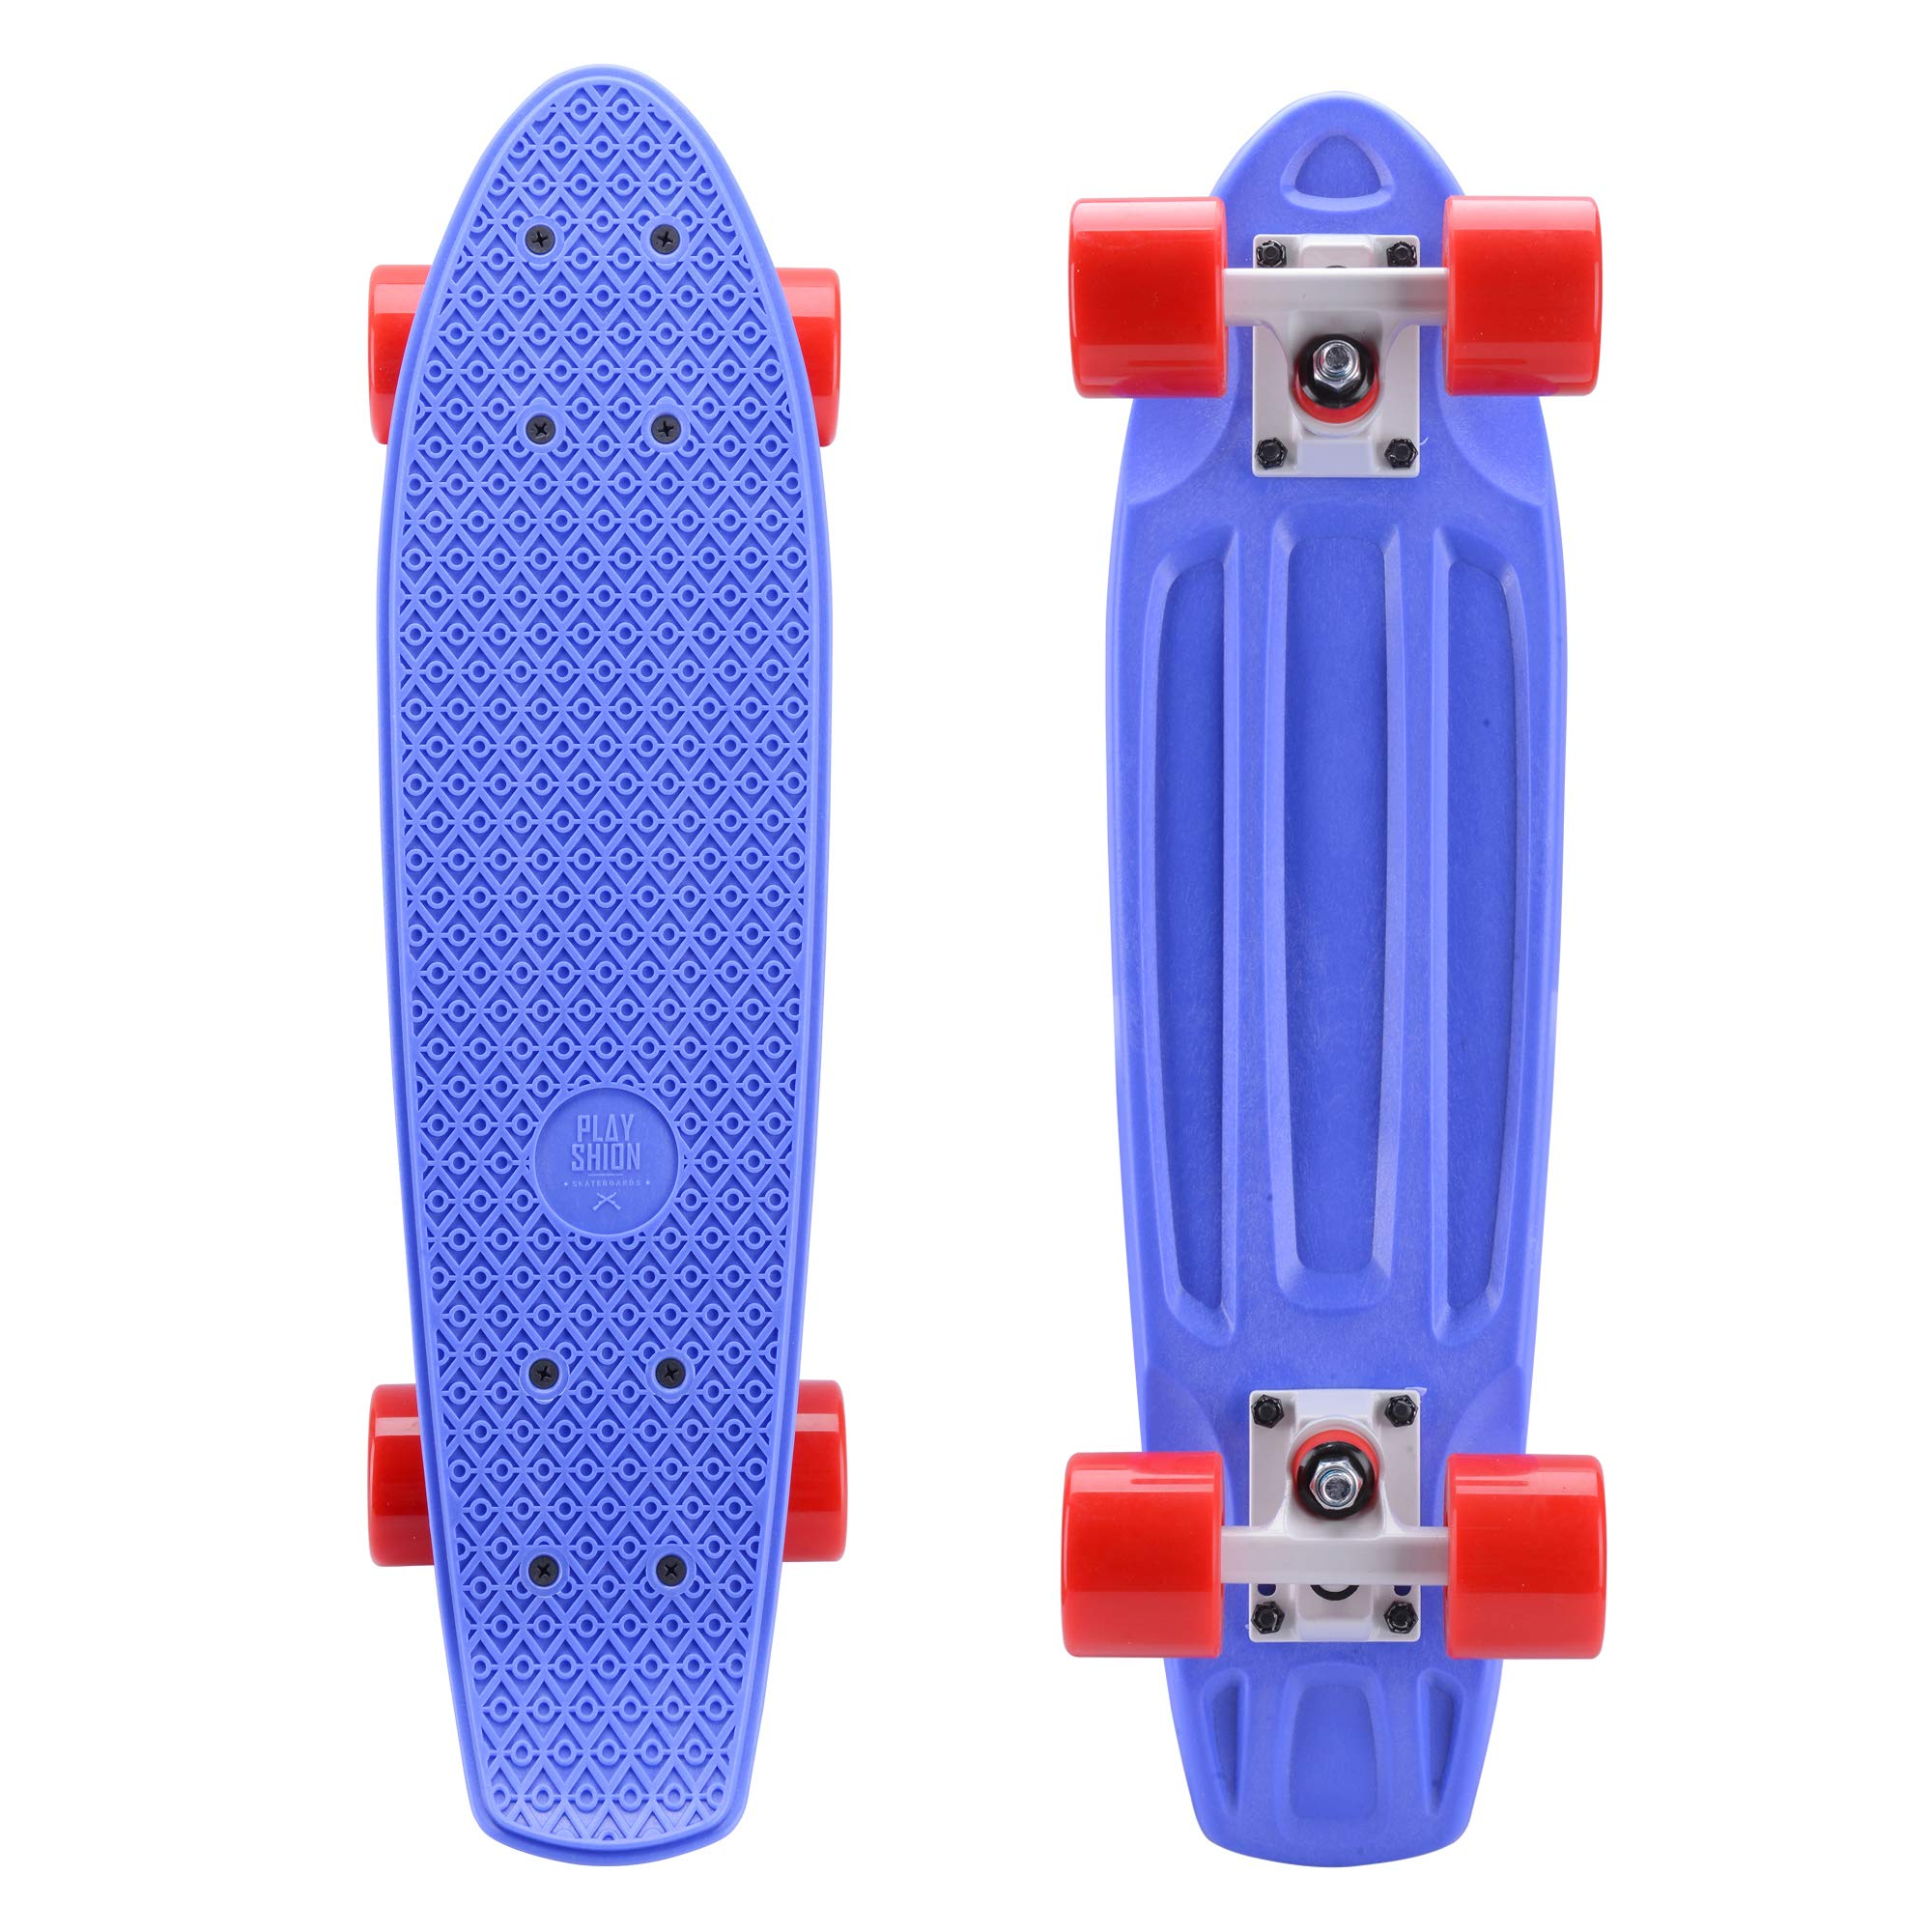 Playshion Complete 22 Inch Mini Cruiser Skateboard for Beginner with Sturdy Deck Blue